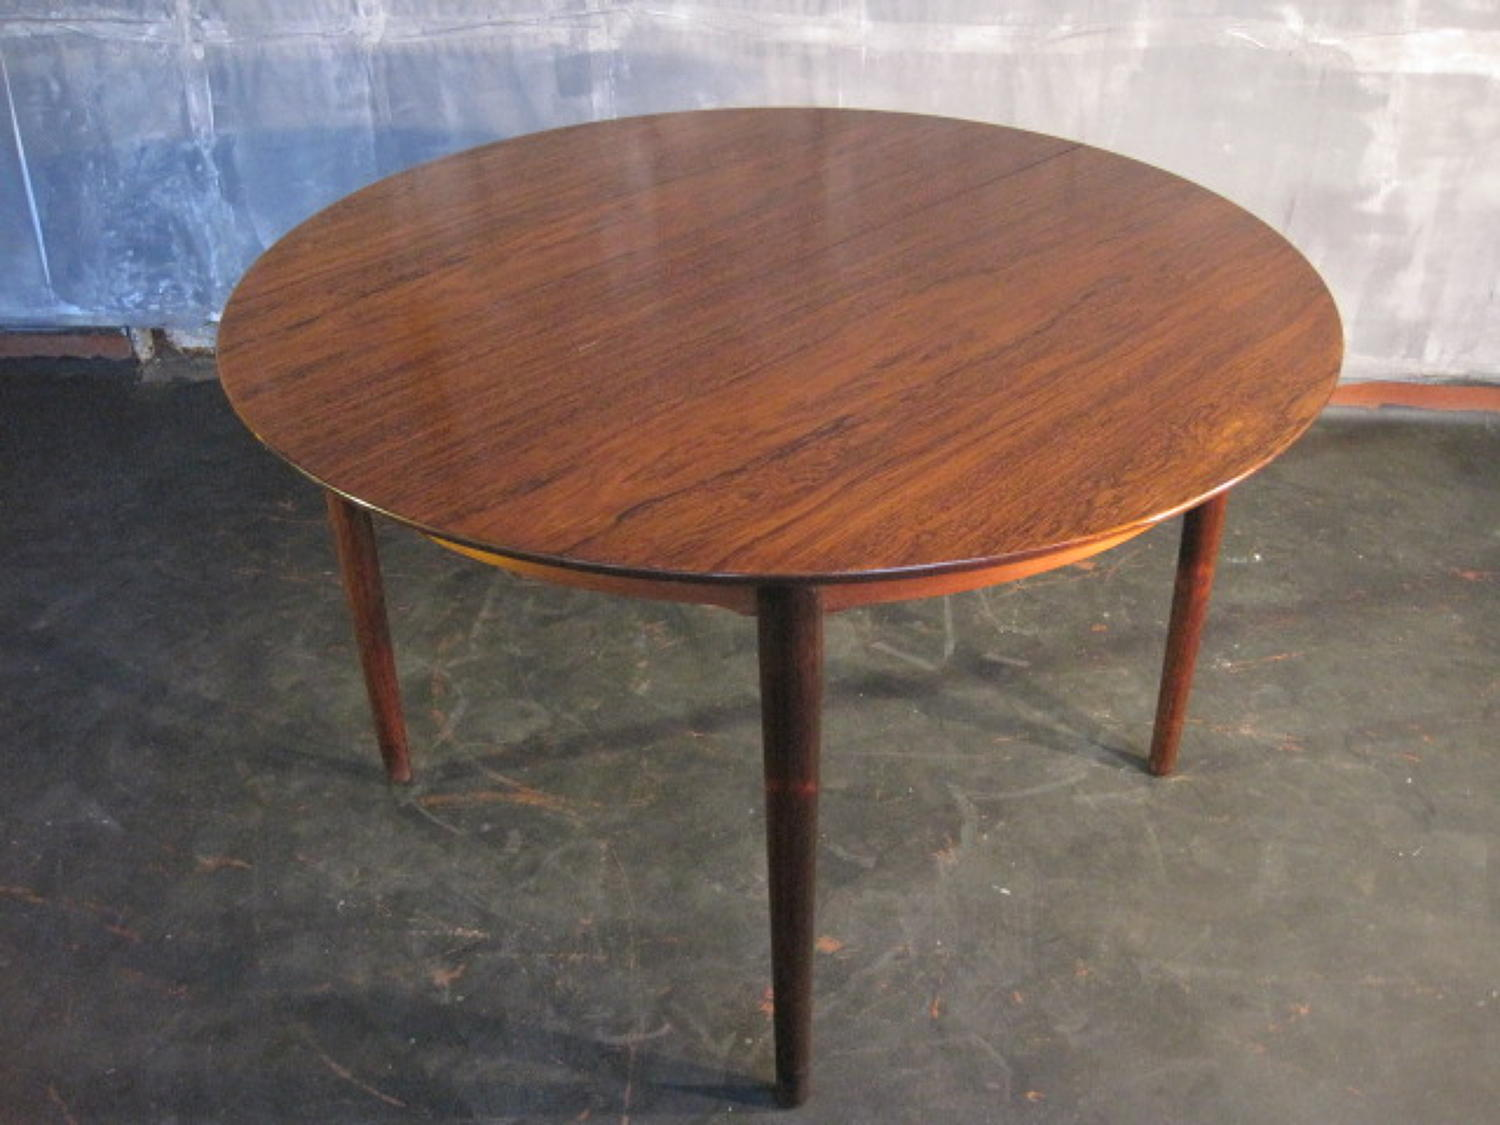 Danish rosewood dining table by Helge Sibast